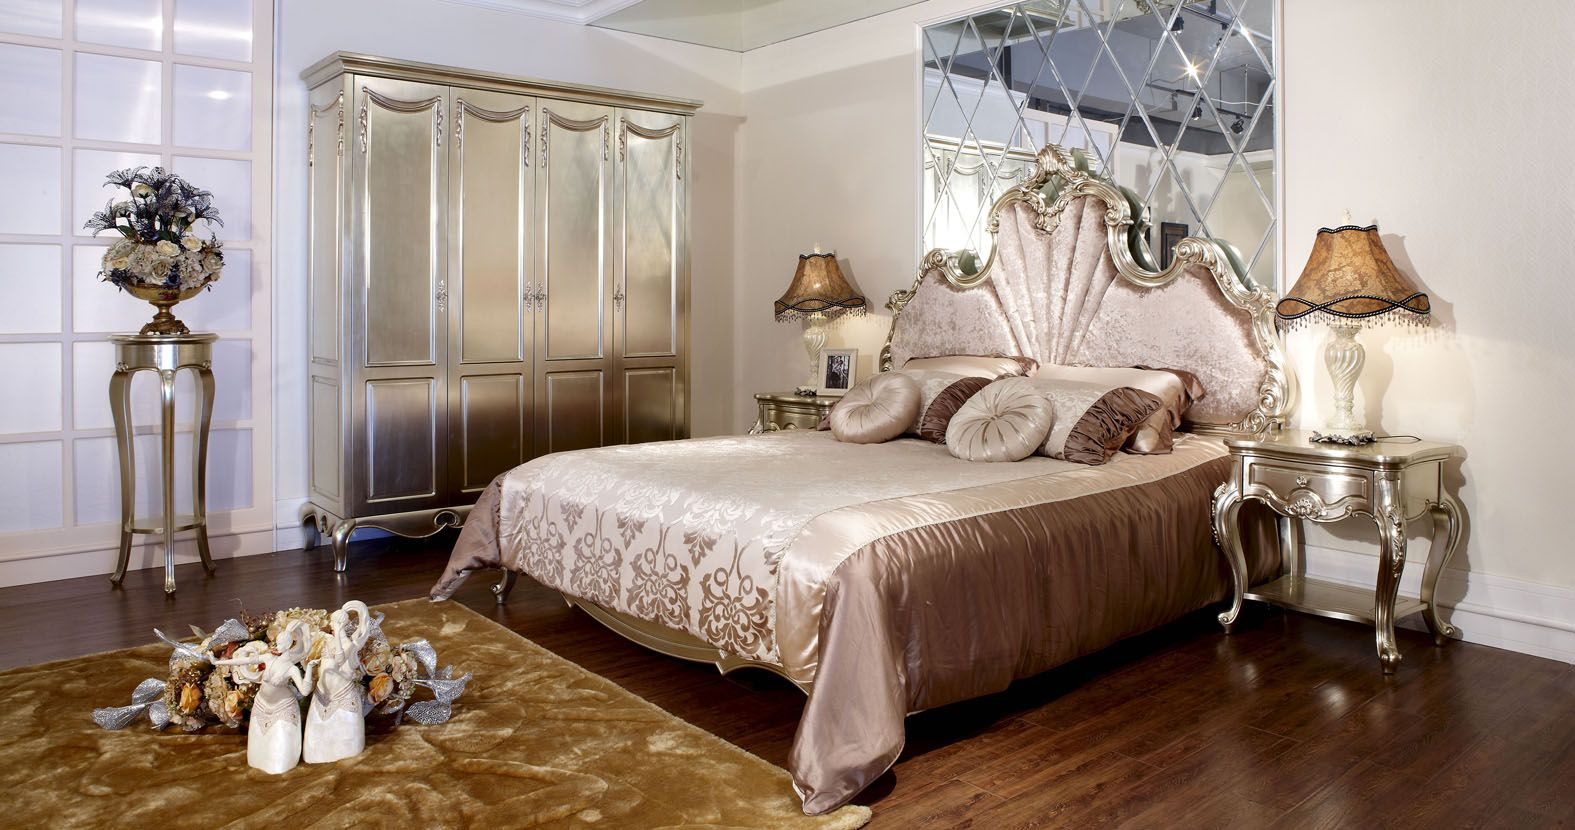 14 Stunningly Dazzling French Bedroom Design